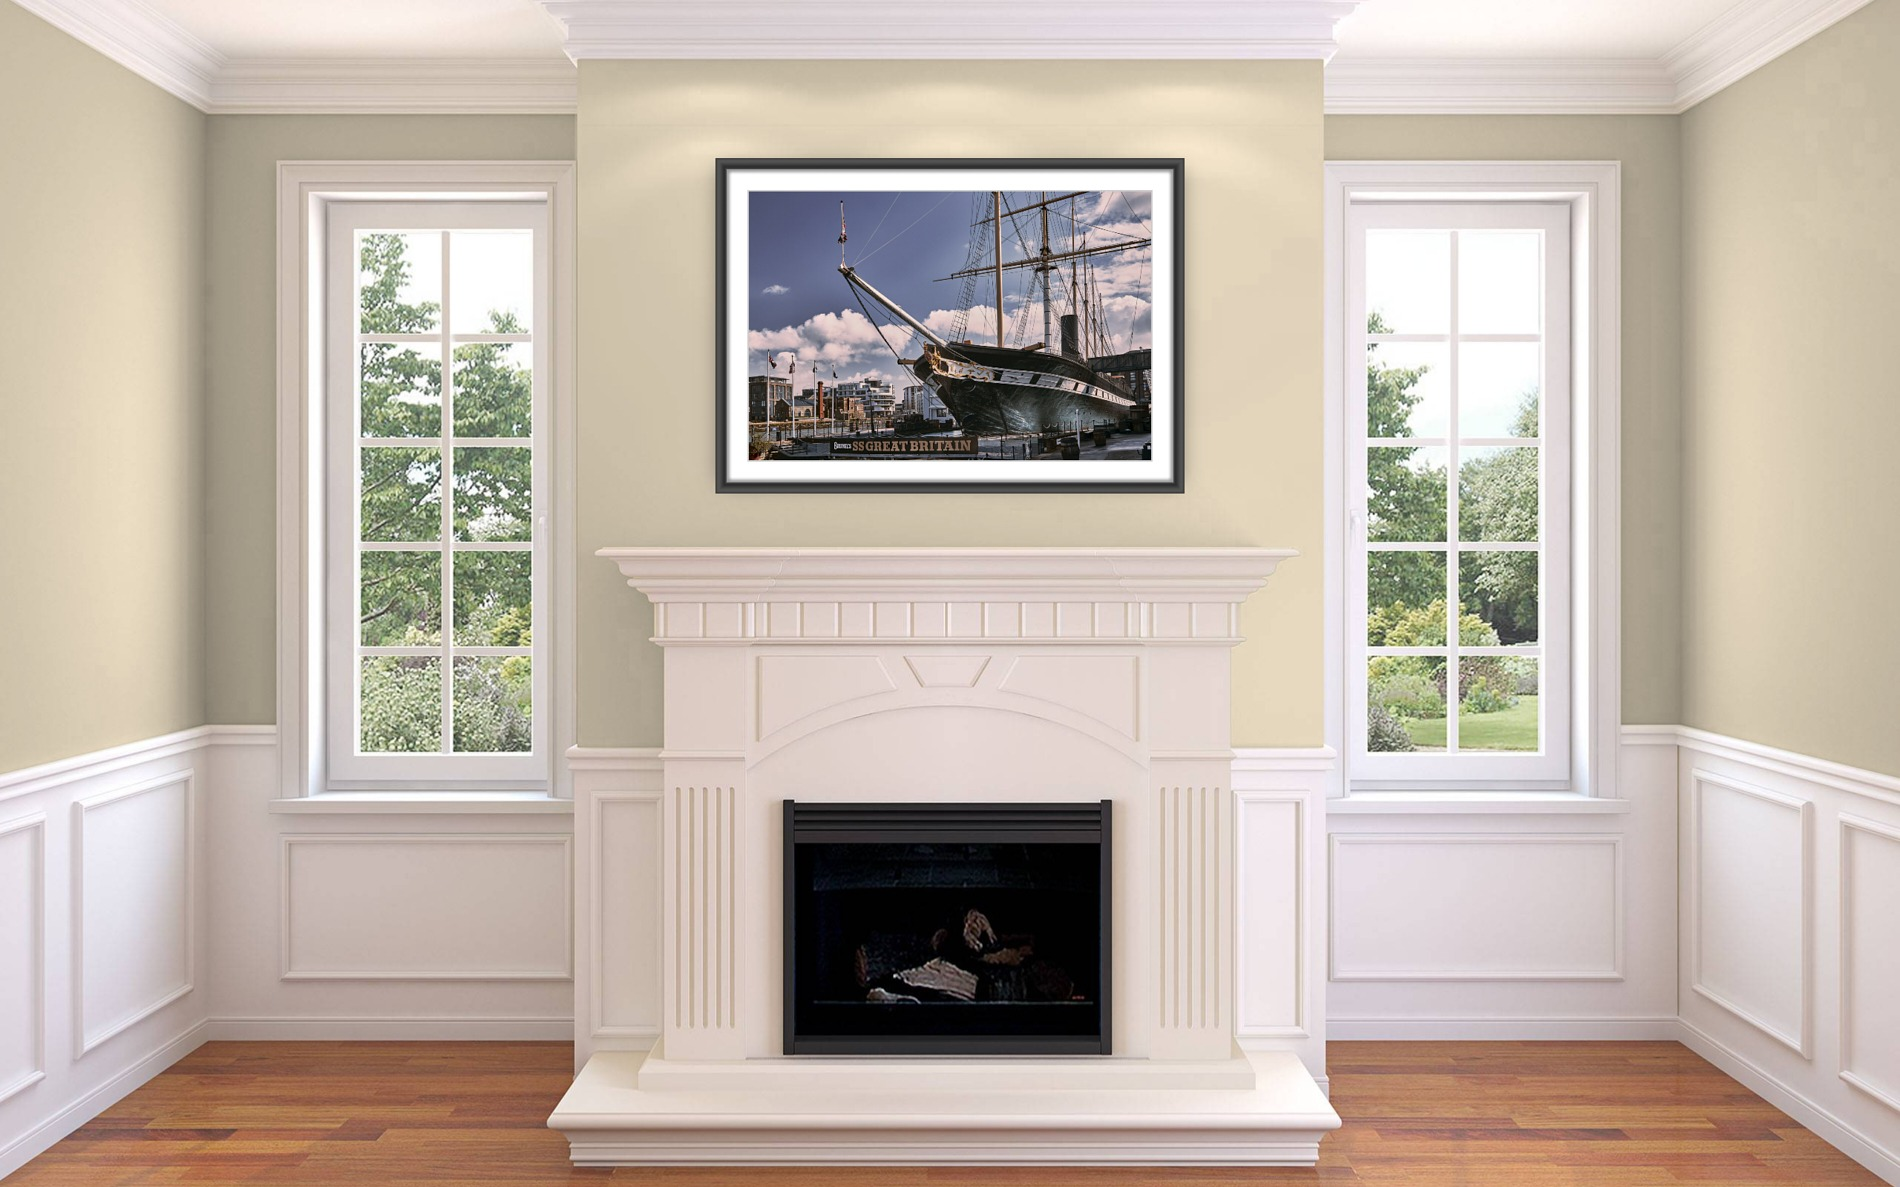 Representation of a framed fine art print of the SS Great Britain